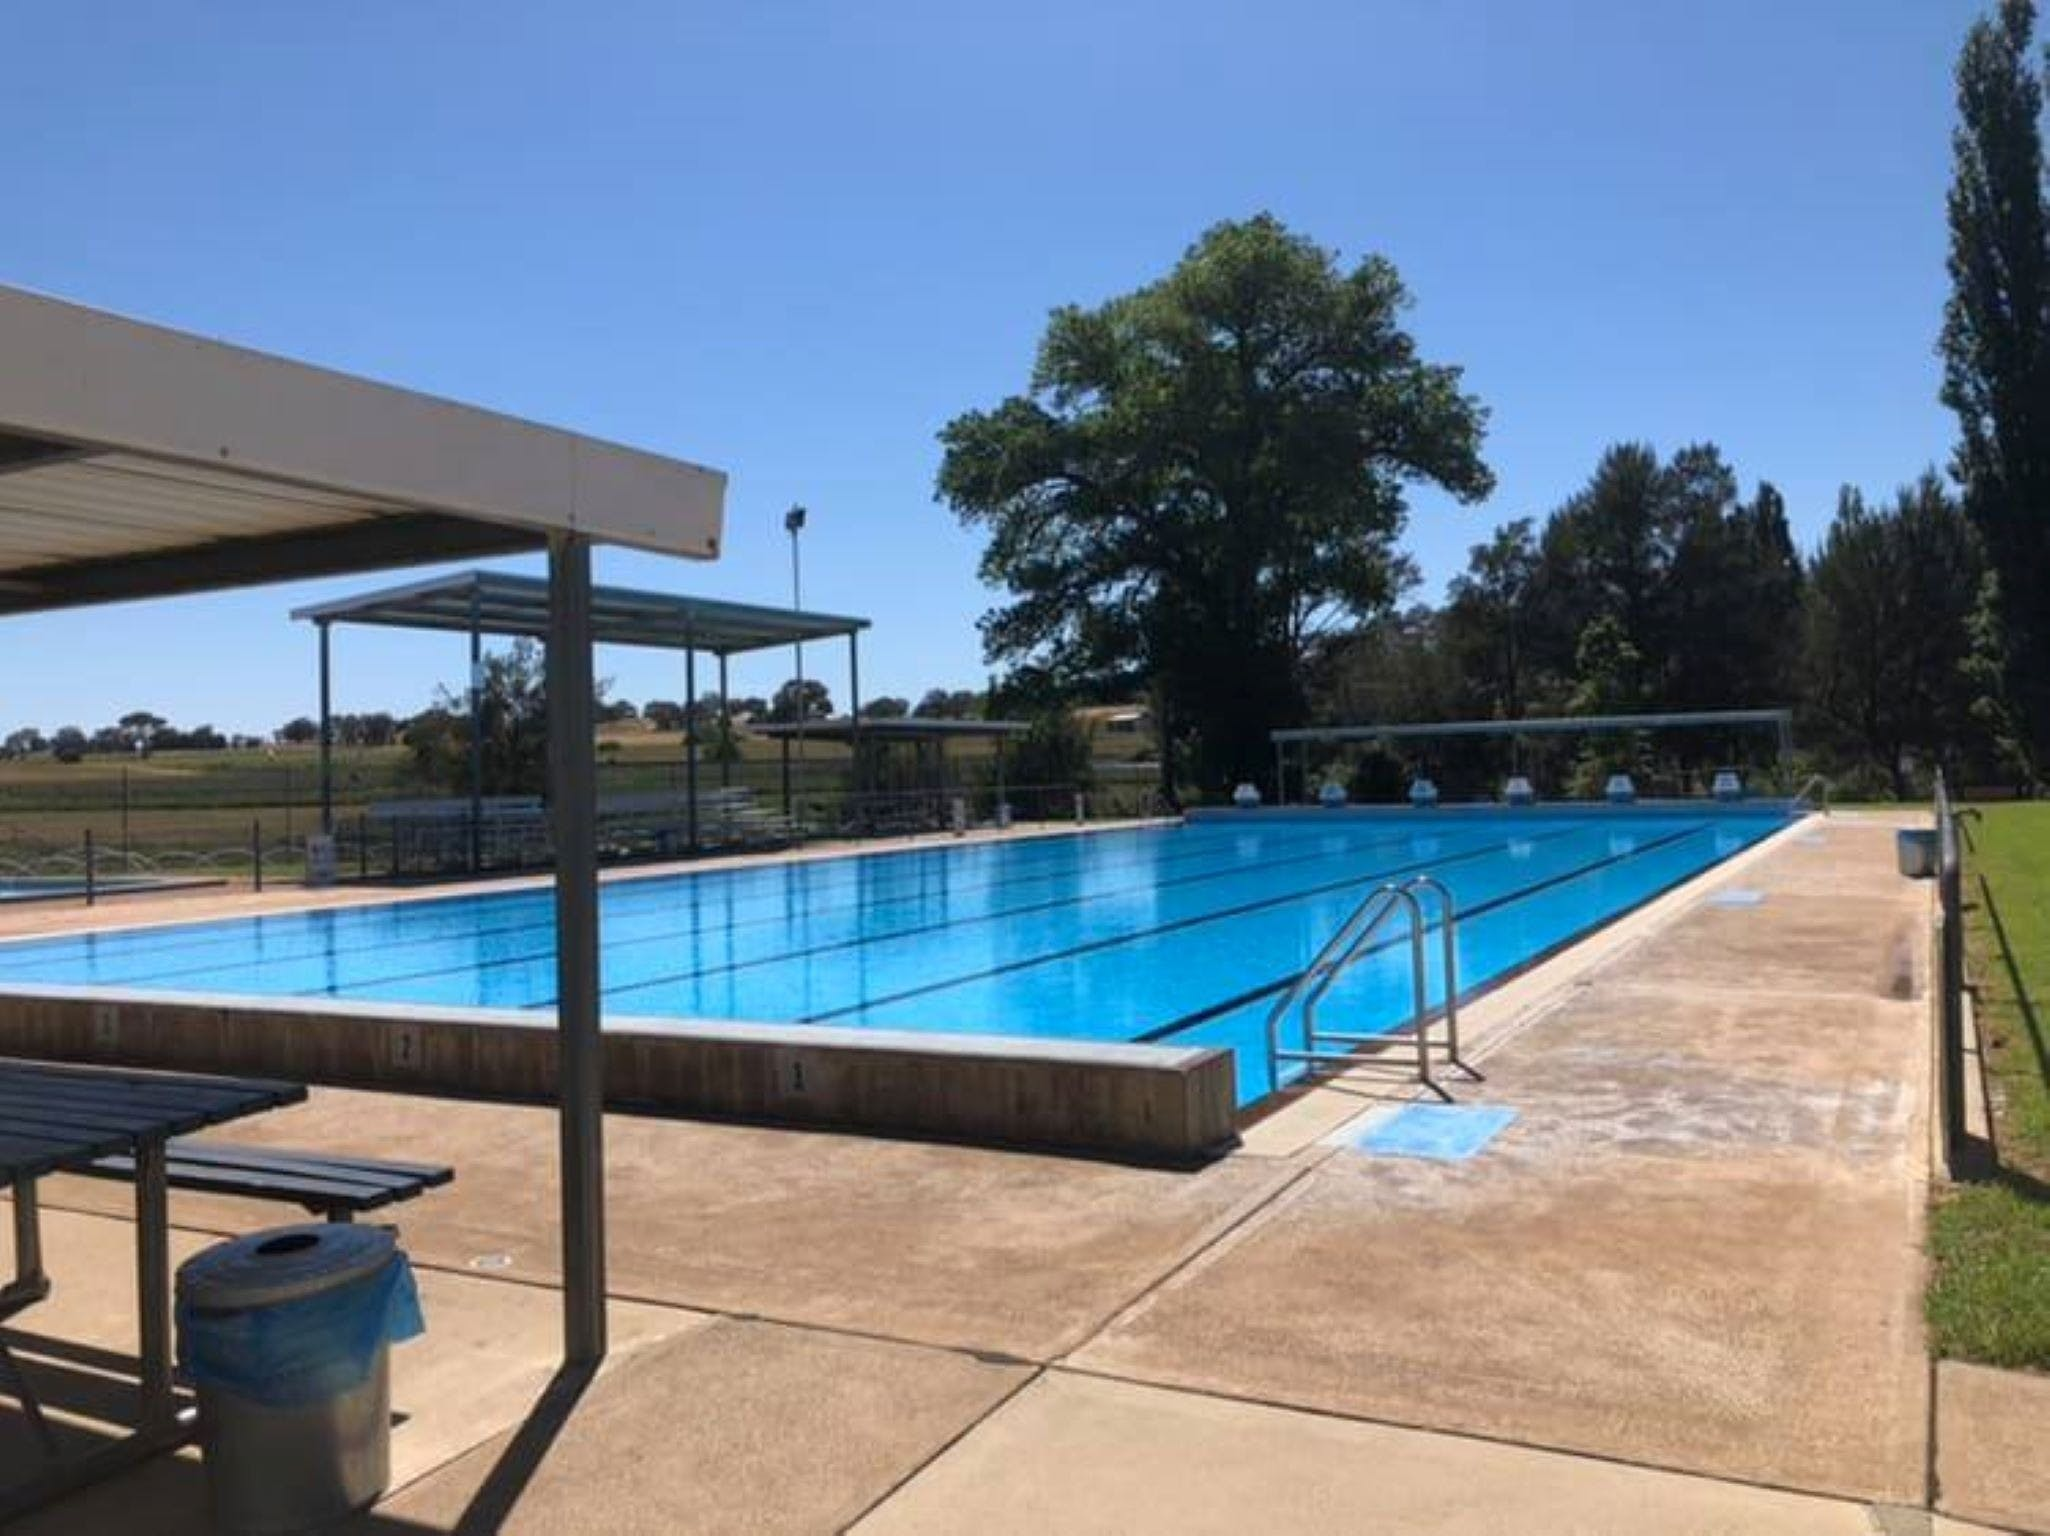 Molong Swimming Pool - Geraldton Accommodation